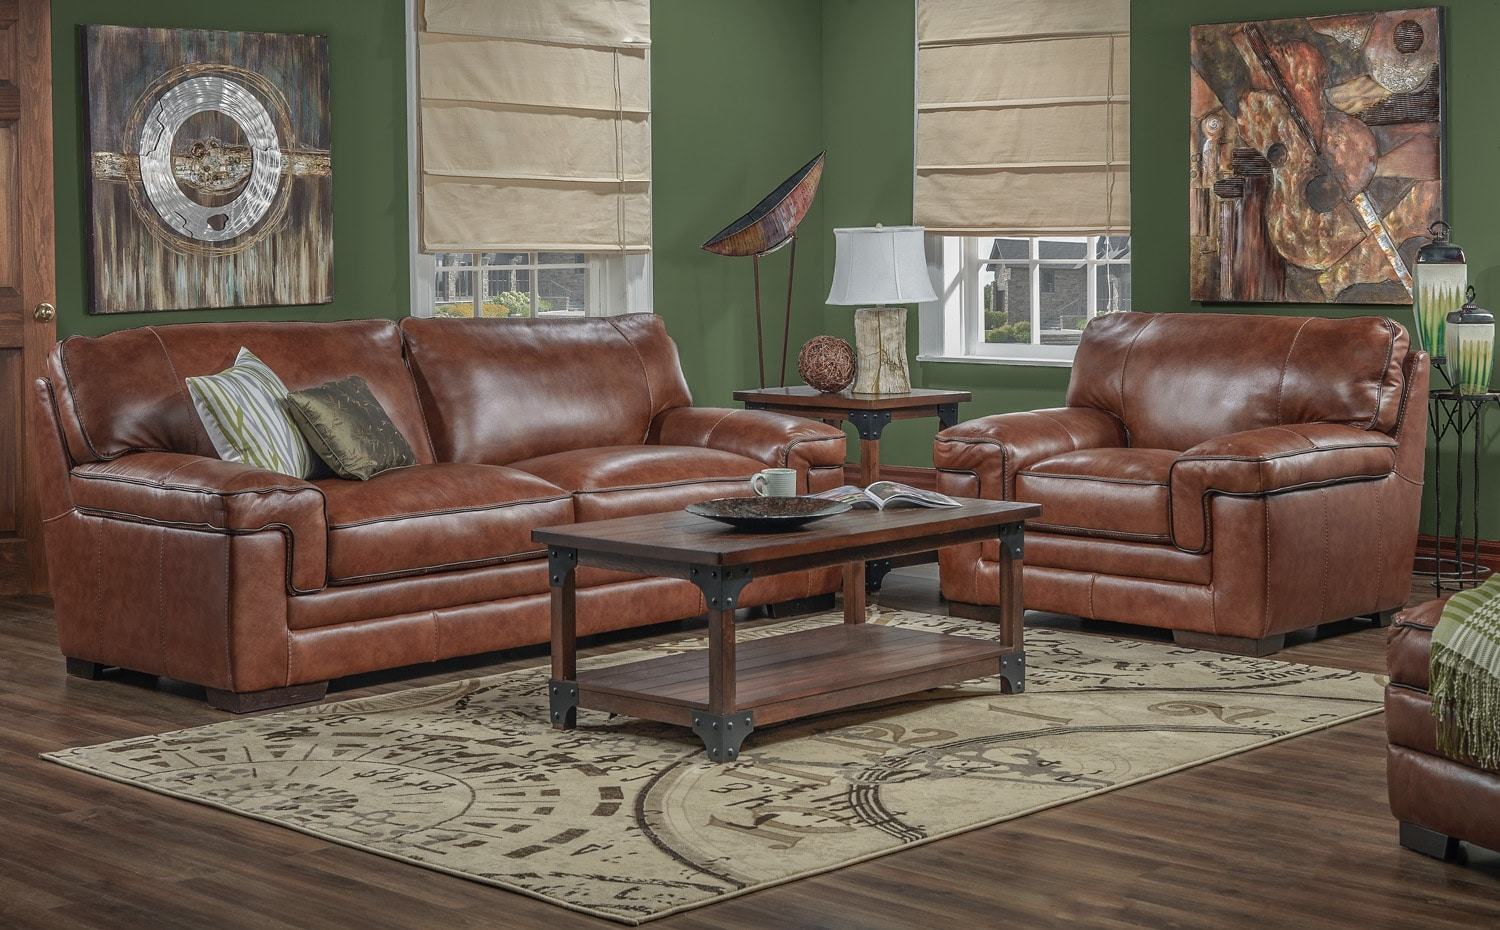 Stampede Sofa and Chair Set - Brown